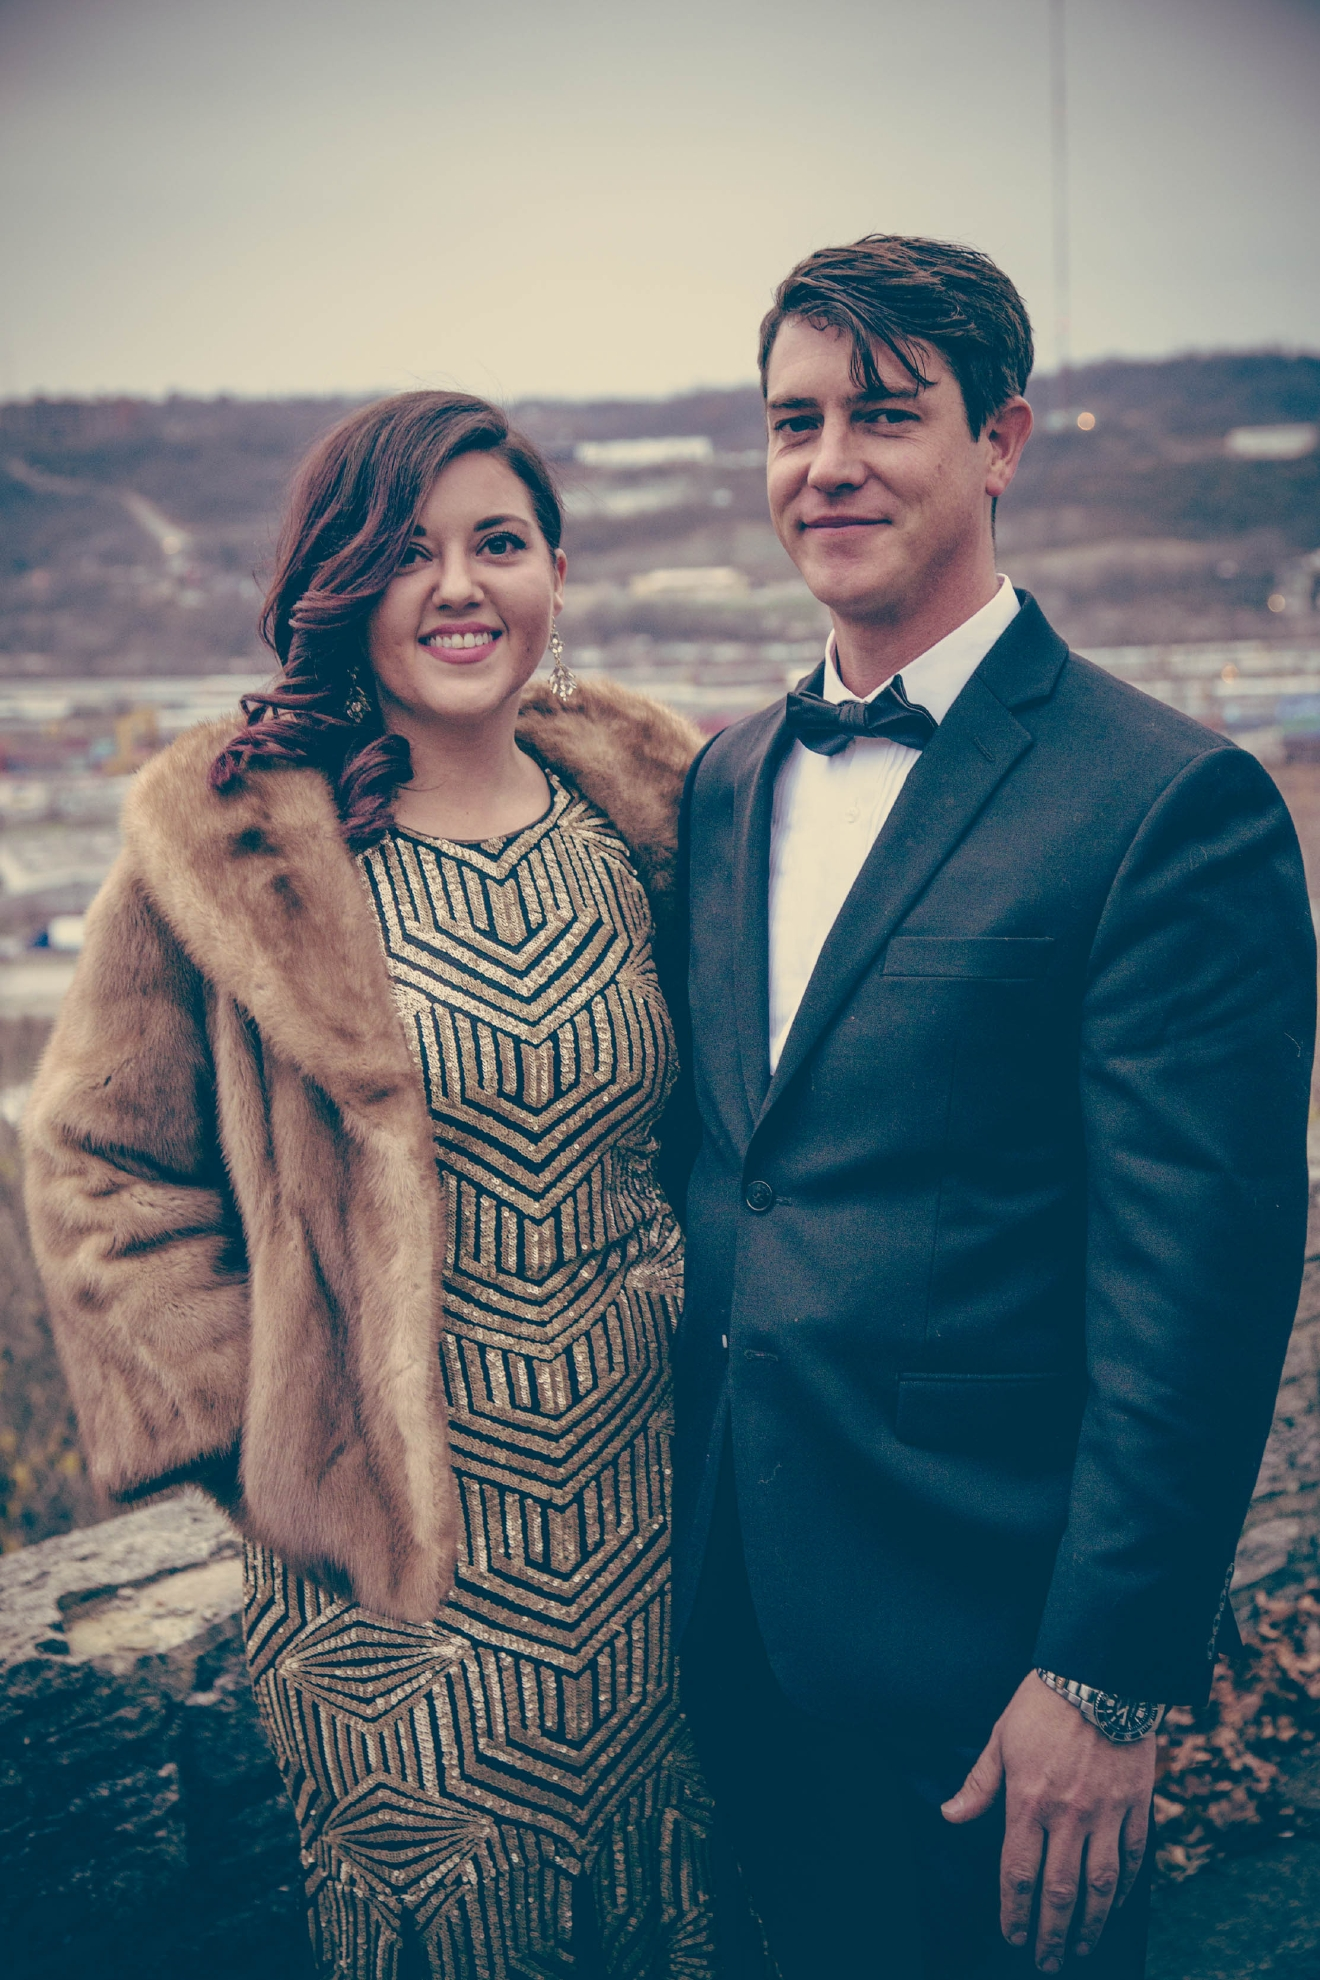 Tara Behrens in a Calvin Klein dress with a vintage Shillito's fur coat, and Chris Bogen in a Calvin Klein suit at Fairview Park. / Image: Catherine Viox // Published: 12.23.16